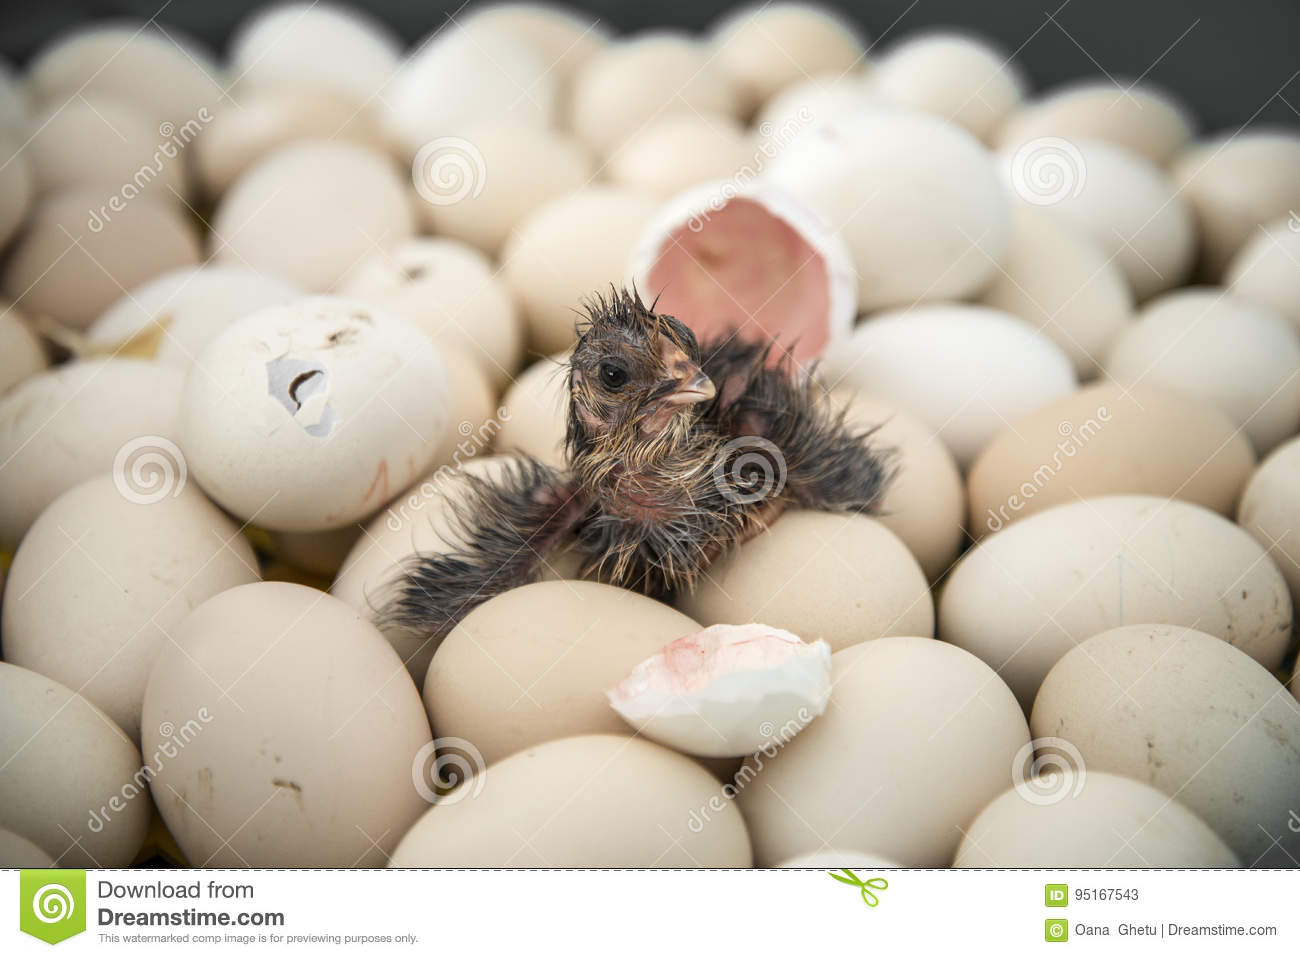 Chicken Hatching From Egg